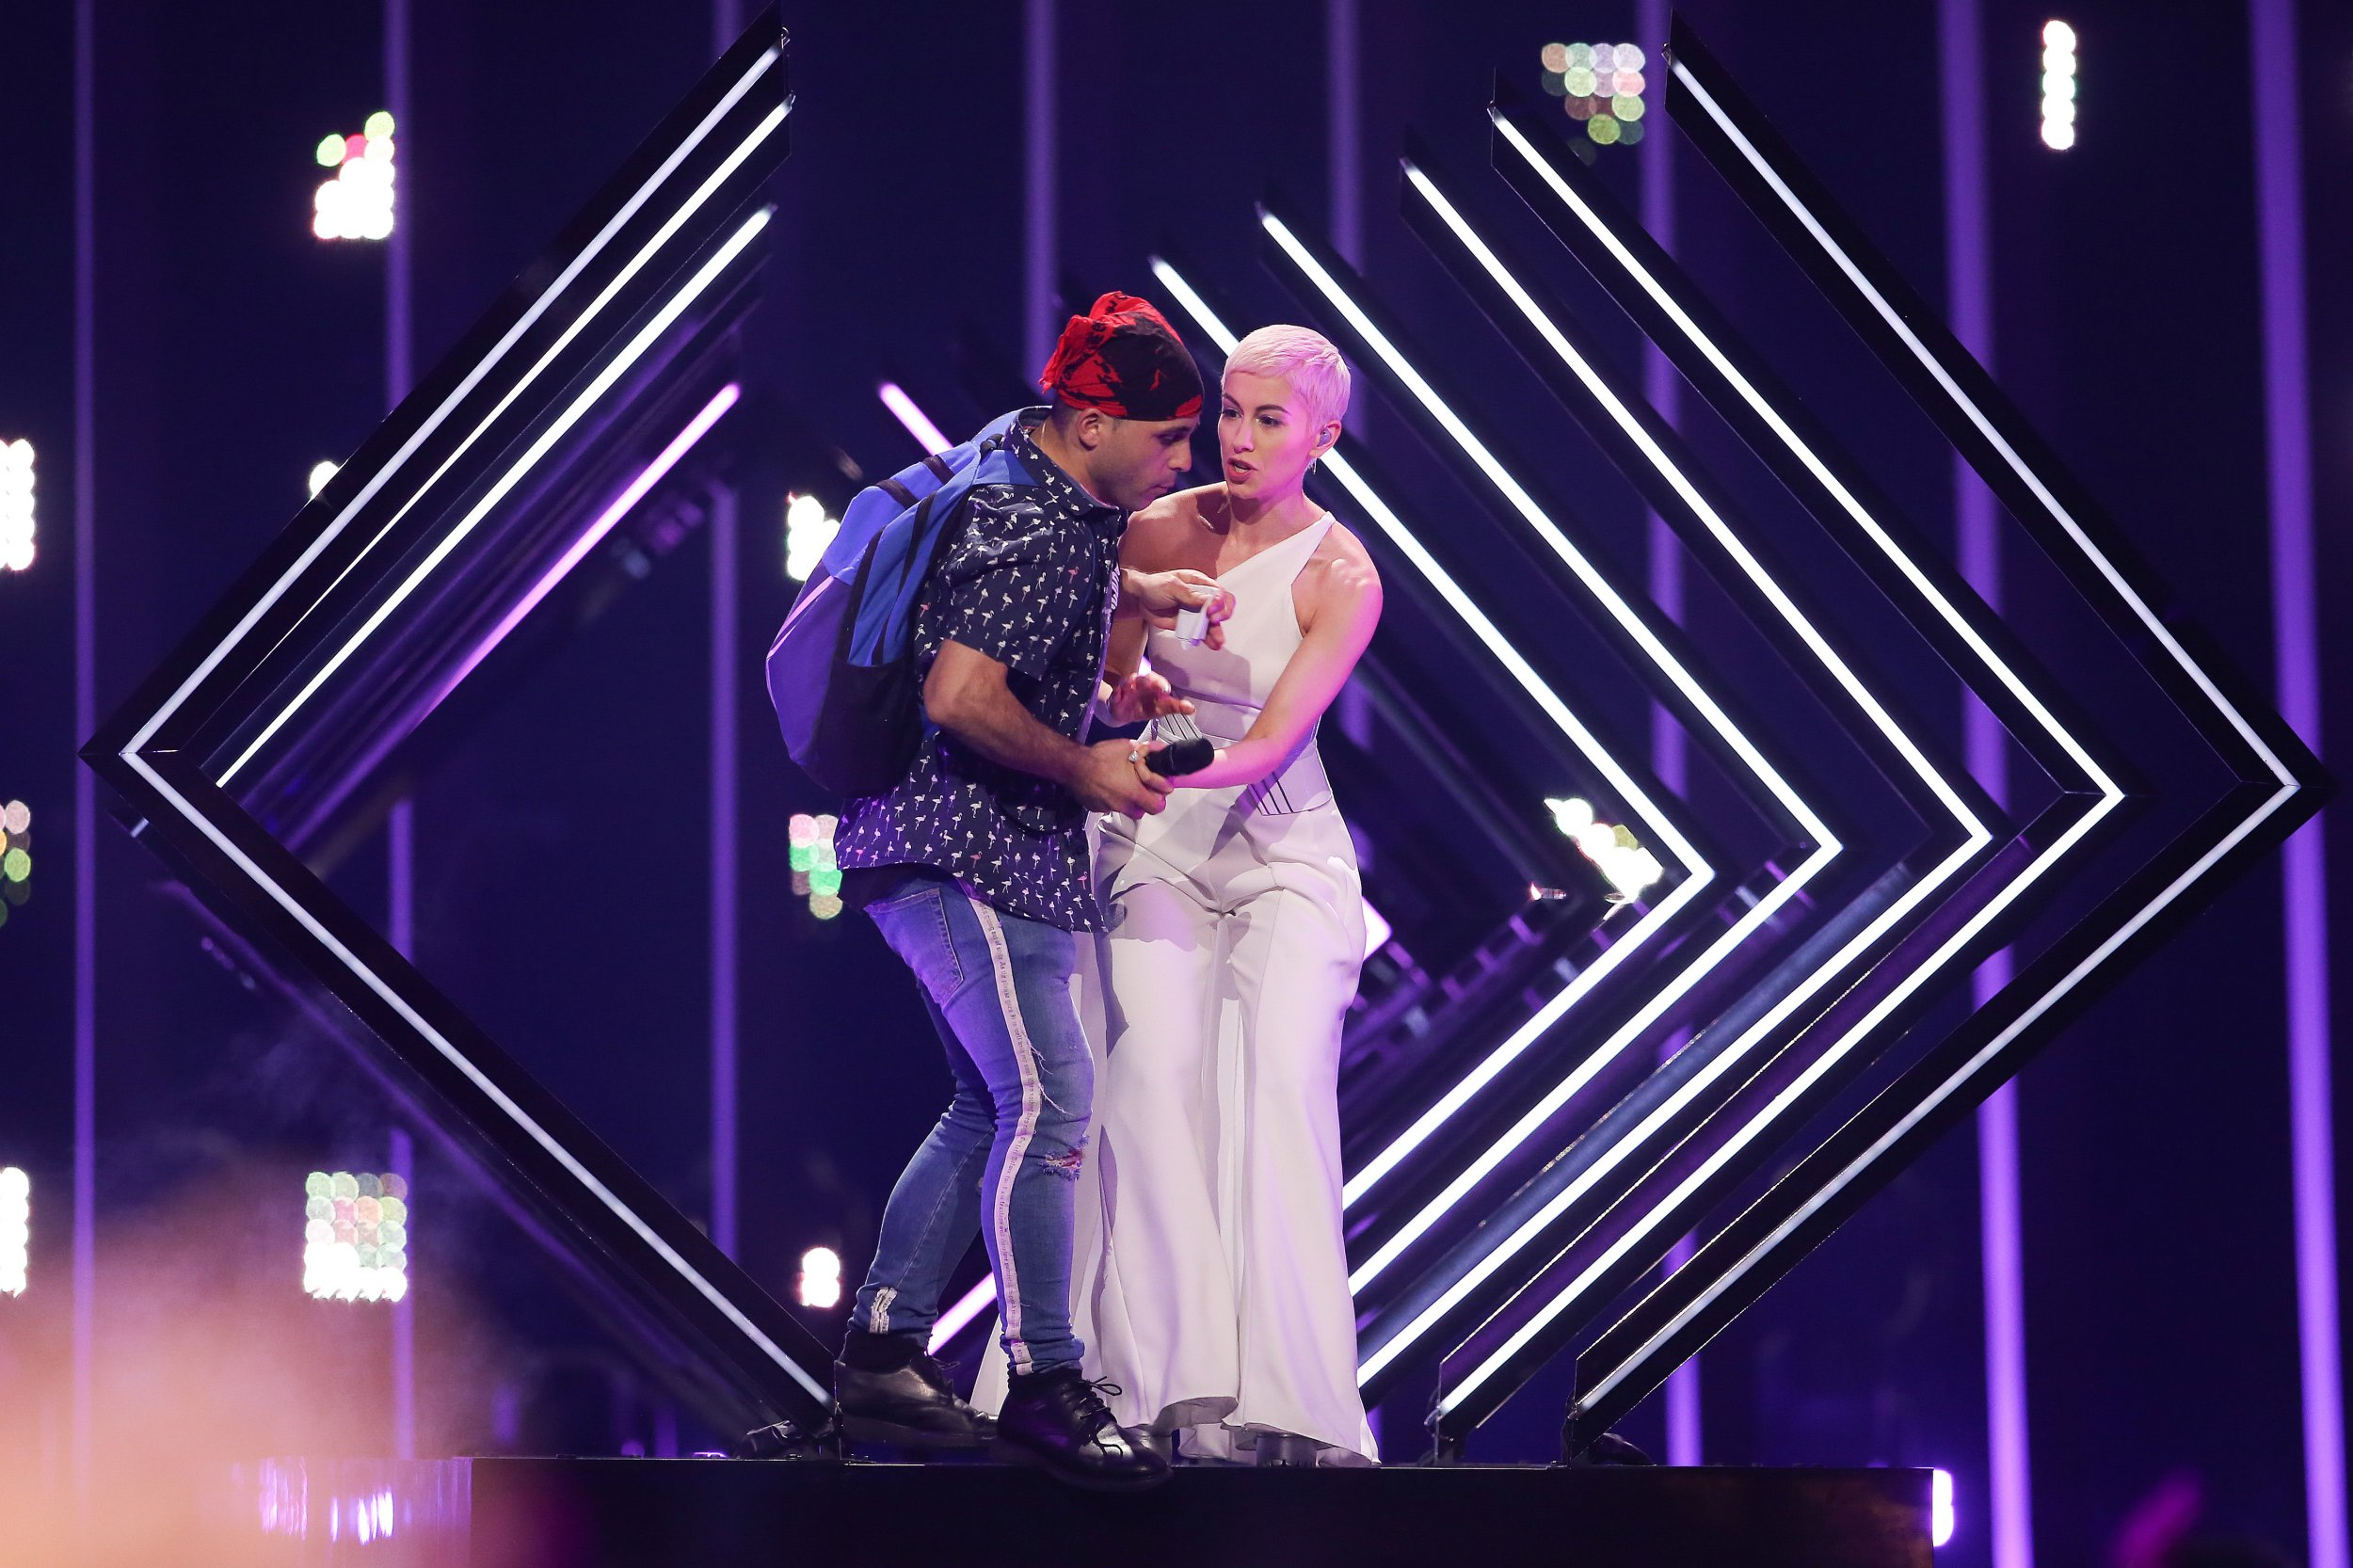 epa06731815 A fan invades the stage during the performance of SuRie (R) representing the United Kingdom with 'Storm' during the Grand Final of the 63rd annual Eurovision Song Contest (ESC) at the Altice Arena in Lisbon, Portugal, 12 May 2018. Twenty-six finalists are competing to win the ESC 2018. EPA/JOSE SENA GOULAO *** Local Caption *** 50359766